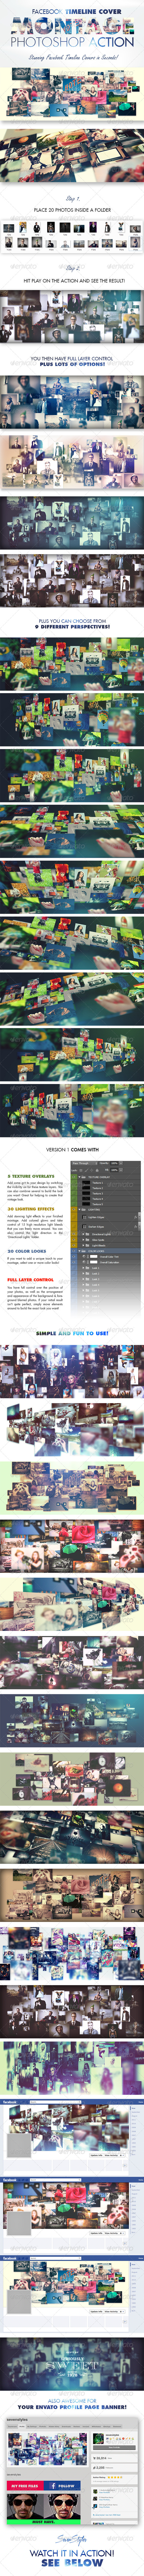 GraphicRiver Facebook Timeline Cover Montage Action 7496328